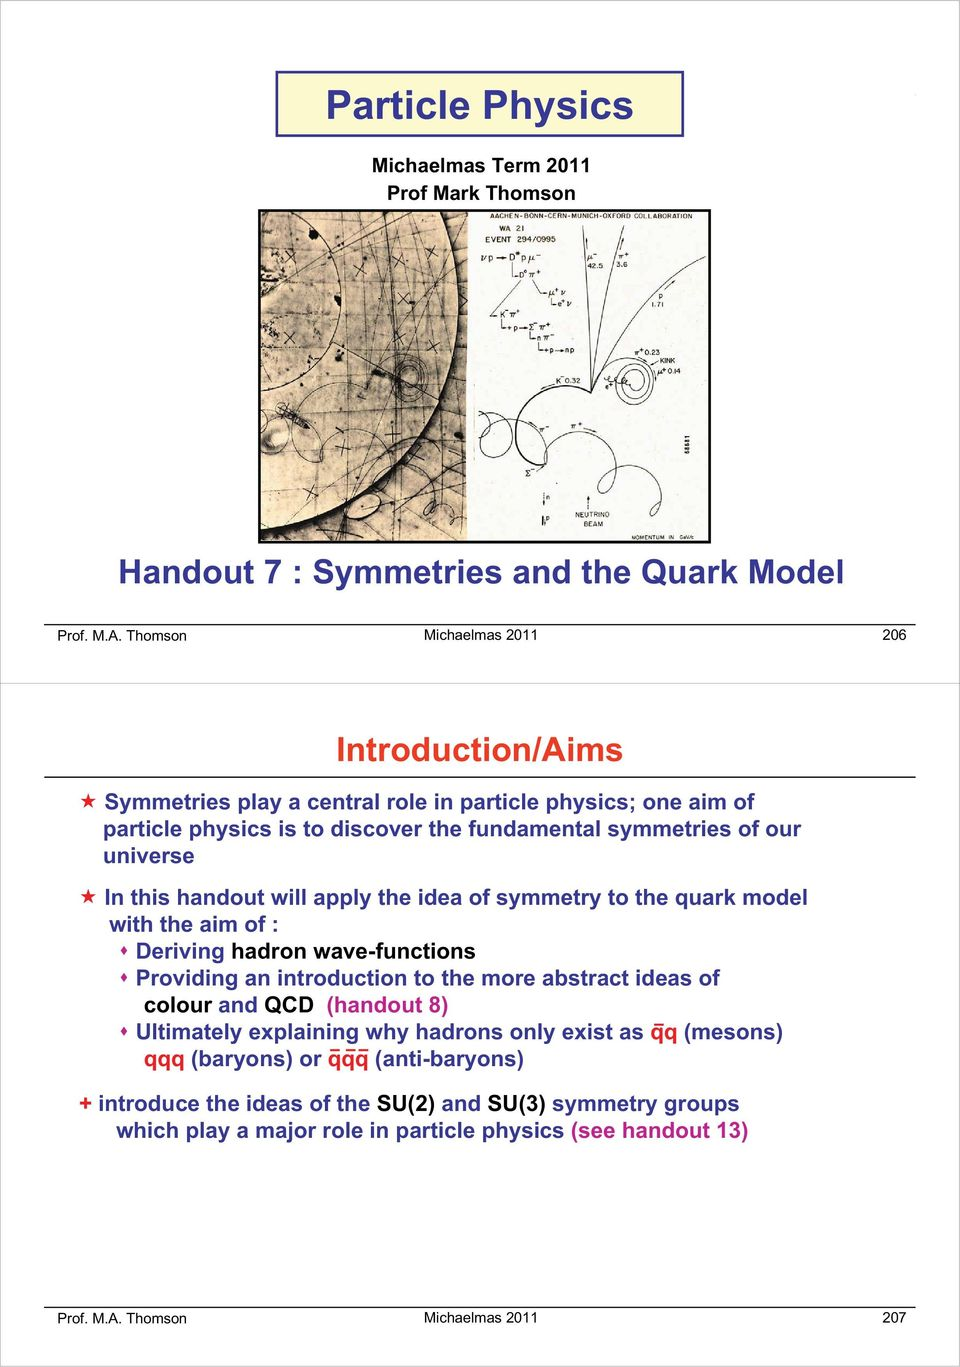 this handout will apply the idea of symmetry to the quark model with the aim of : Deriving hadron wave-functions Providing an introduction to the more abstract ideas of colour and QCD